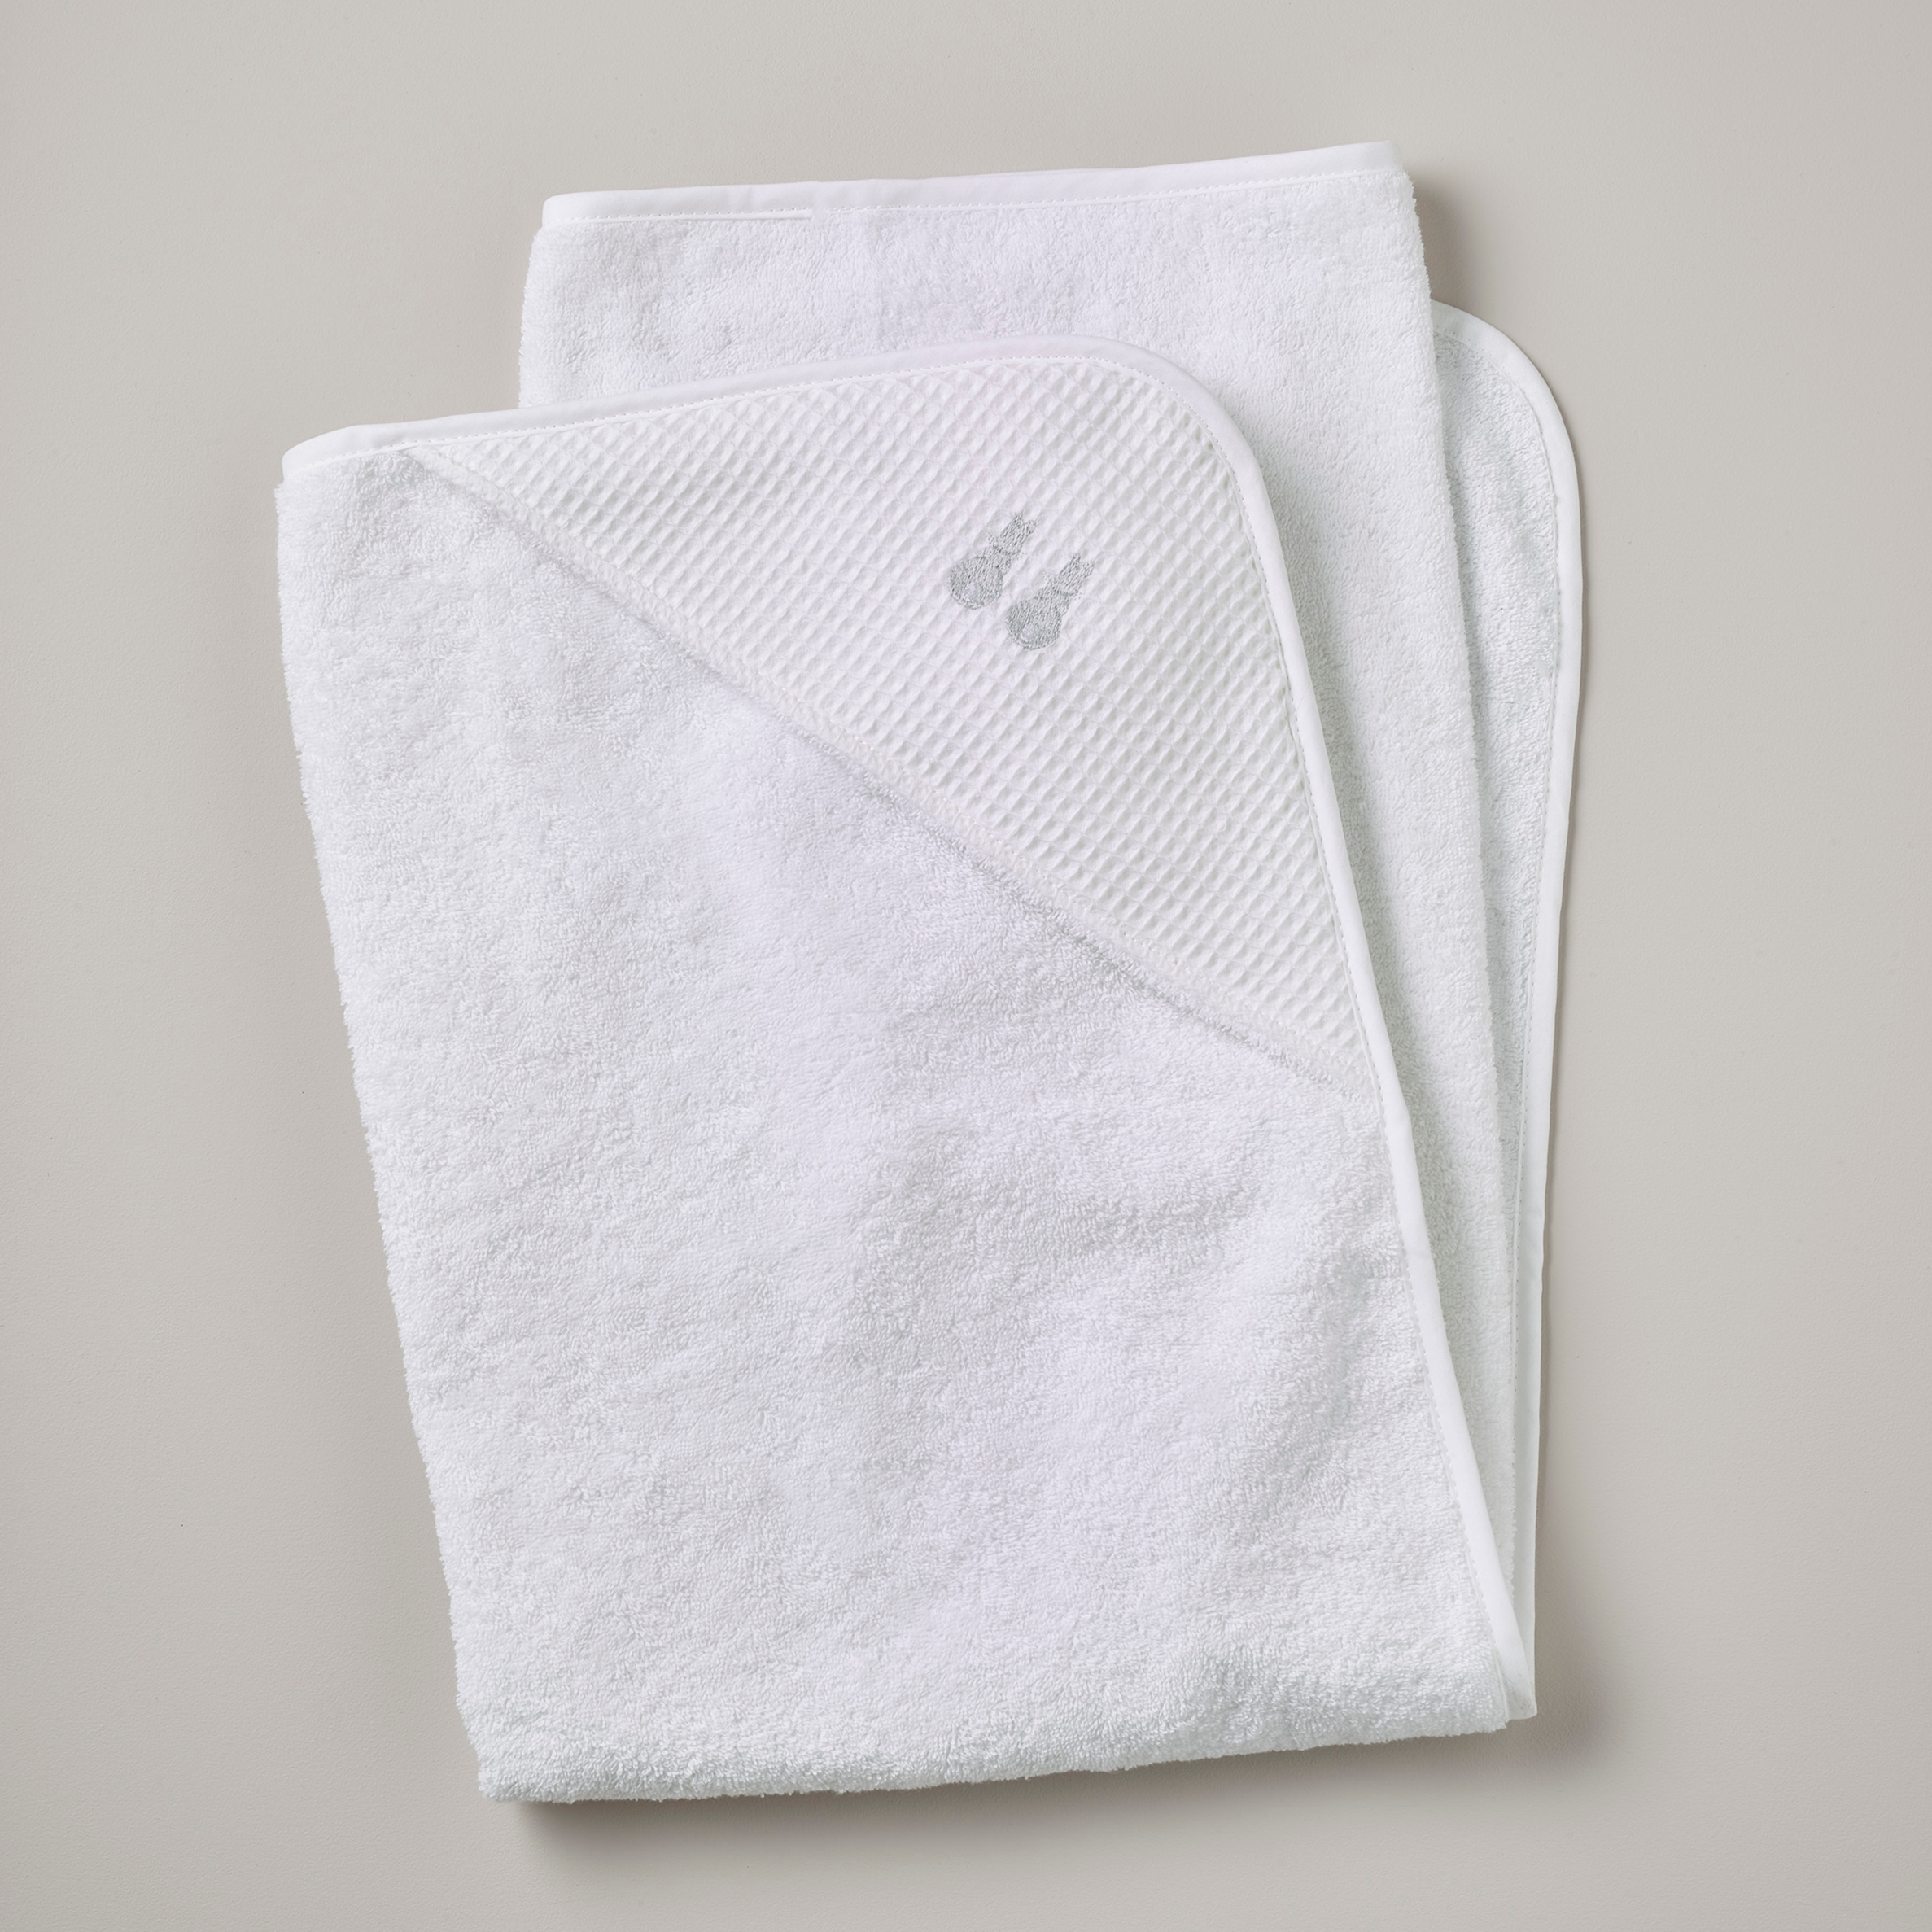 Hooded Towel Embroidered Bunny Grey